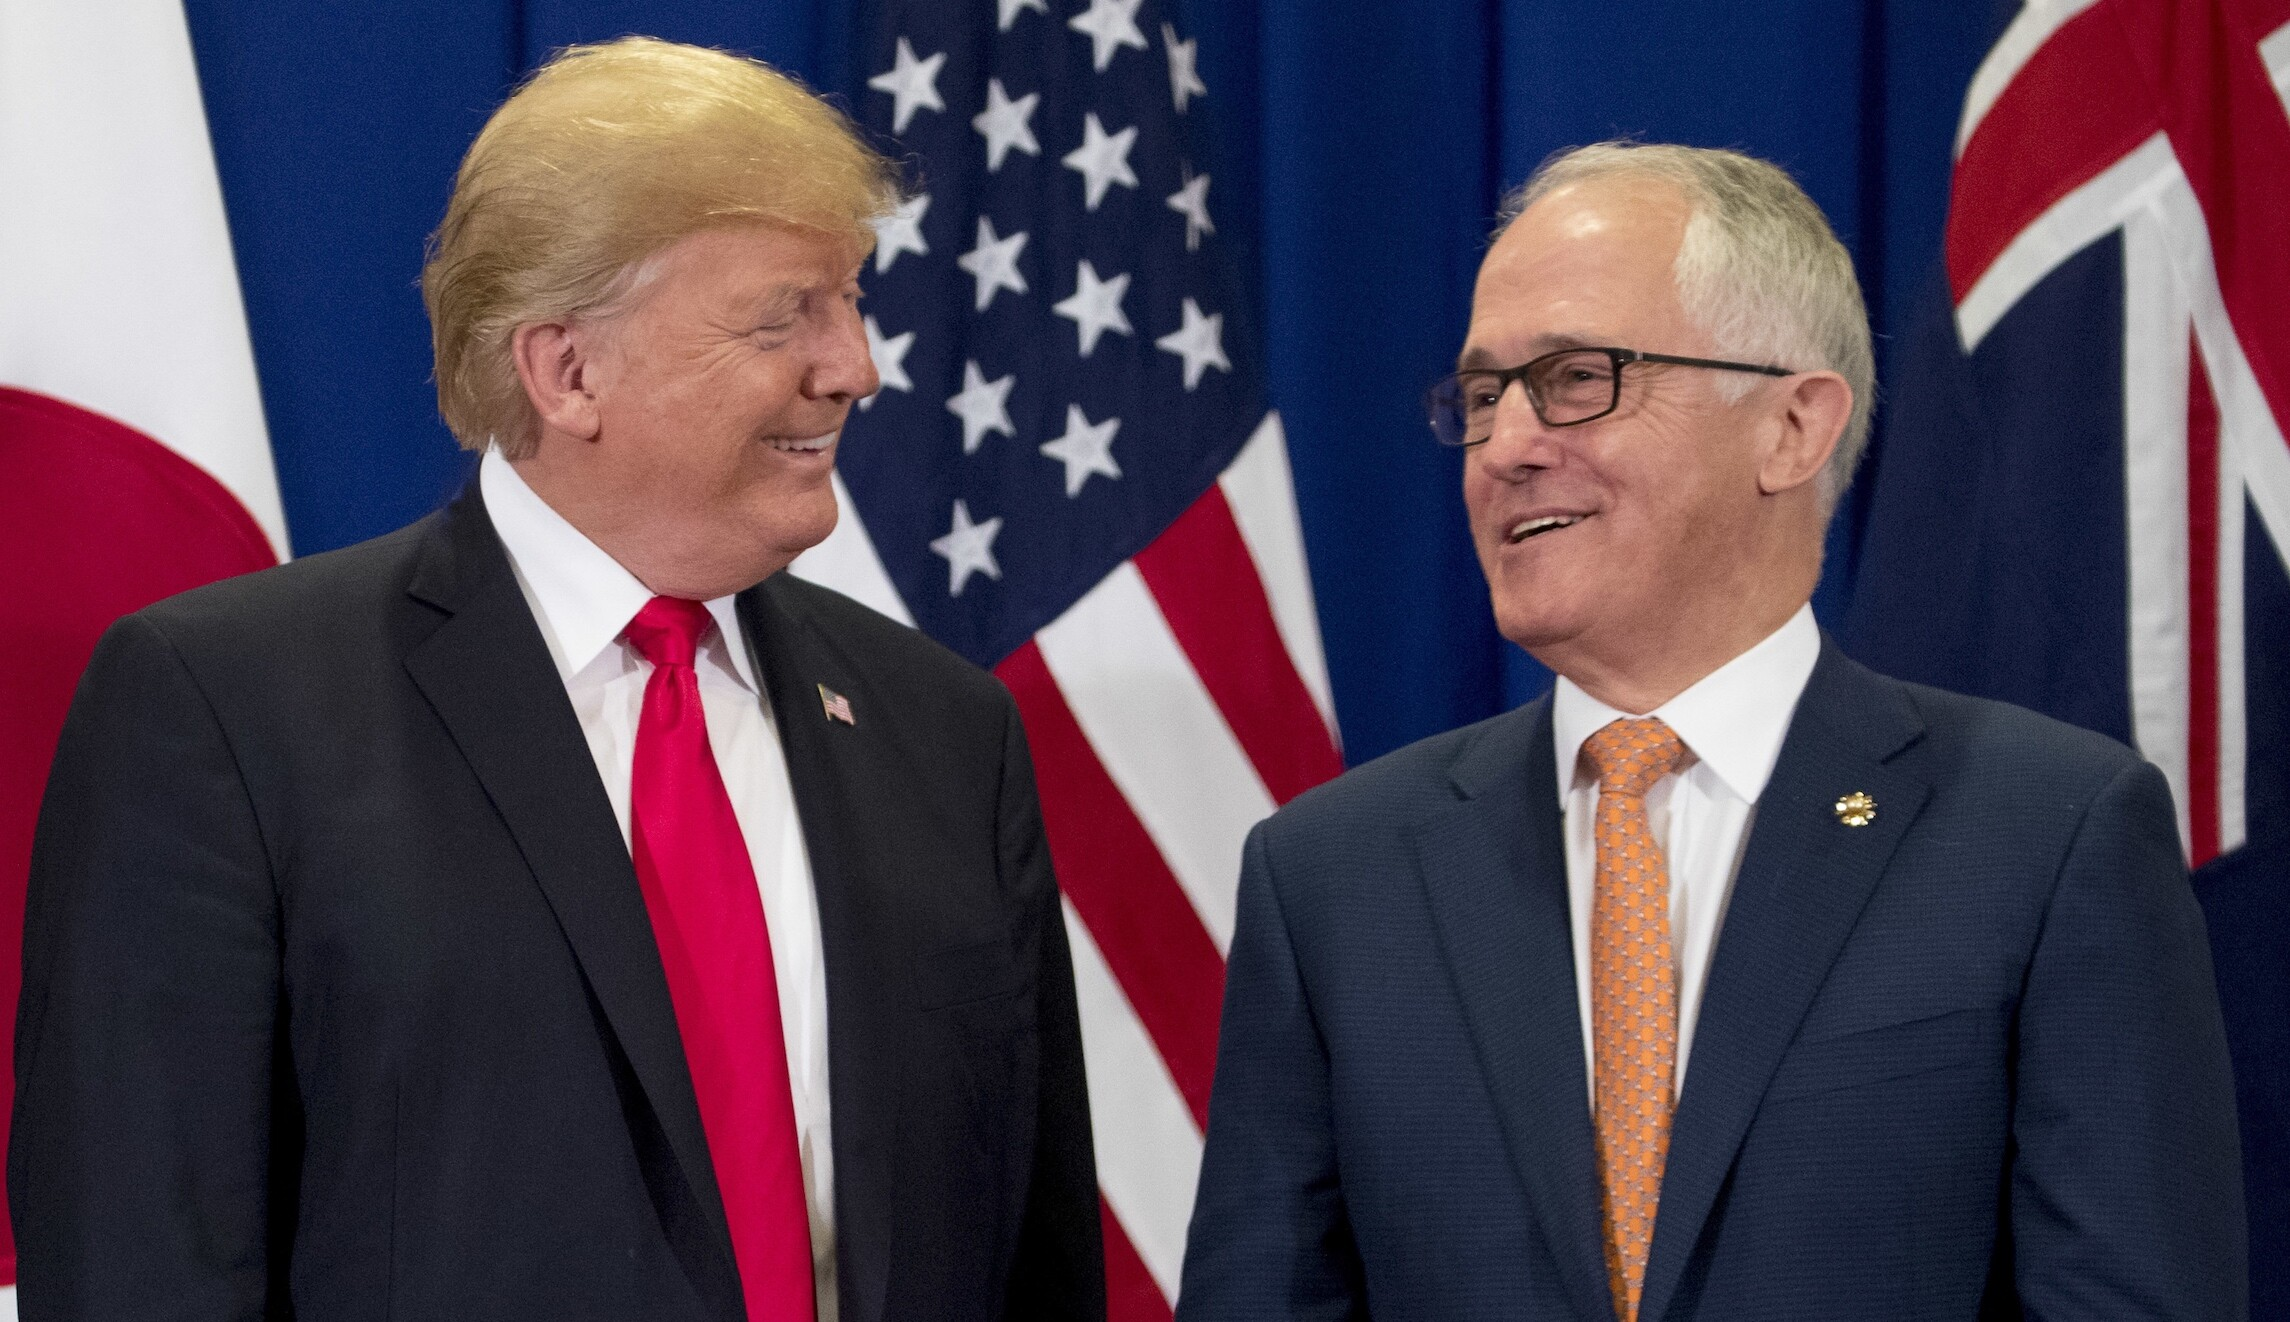 Trump to meet with Australian Prime Minister Malcolm Turnbull as countries  prepare to sign TPP without US: Report